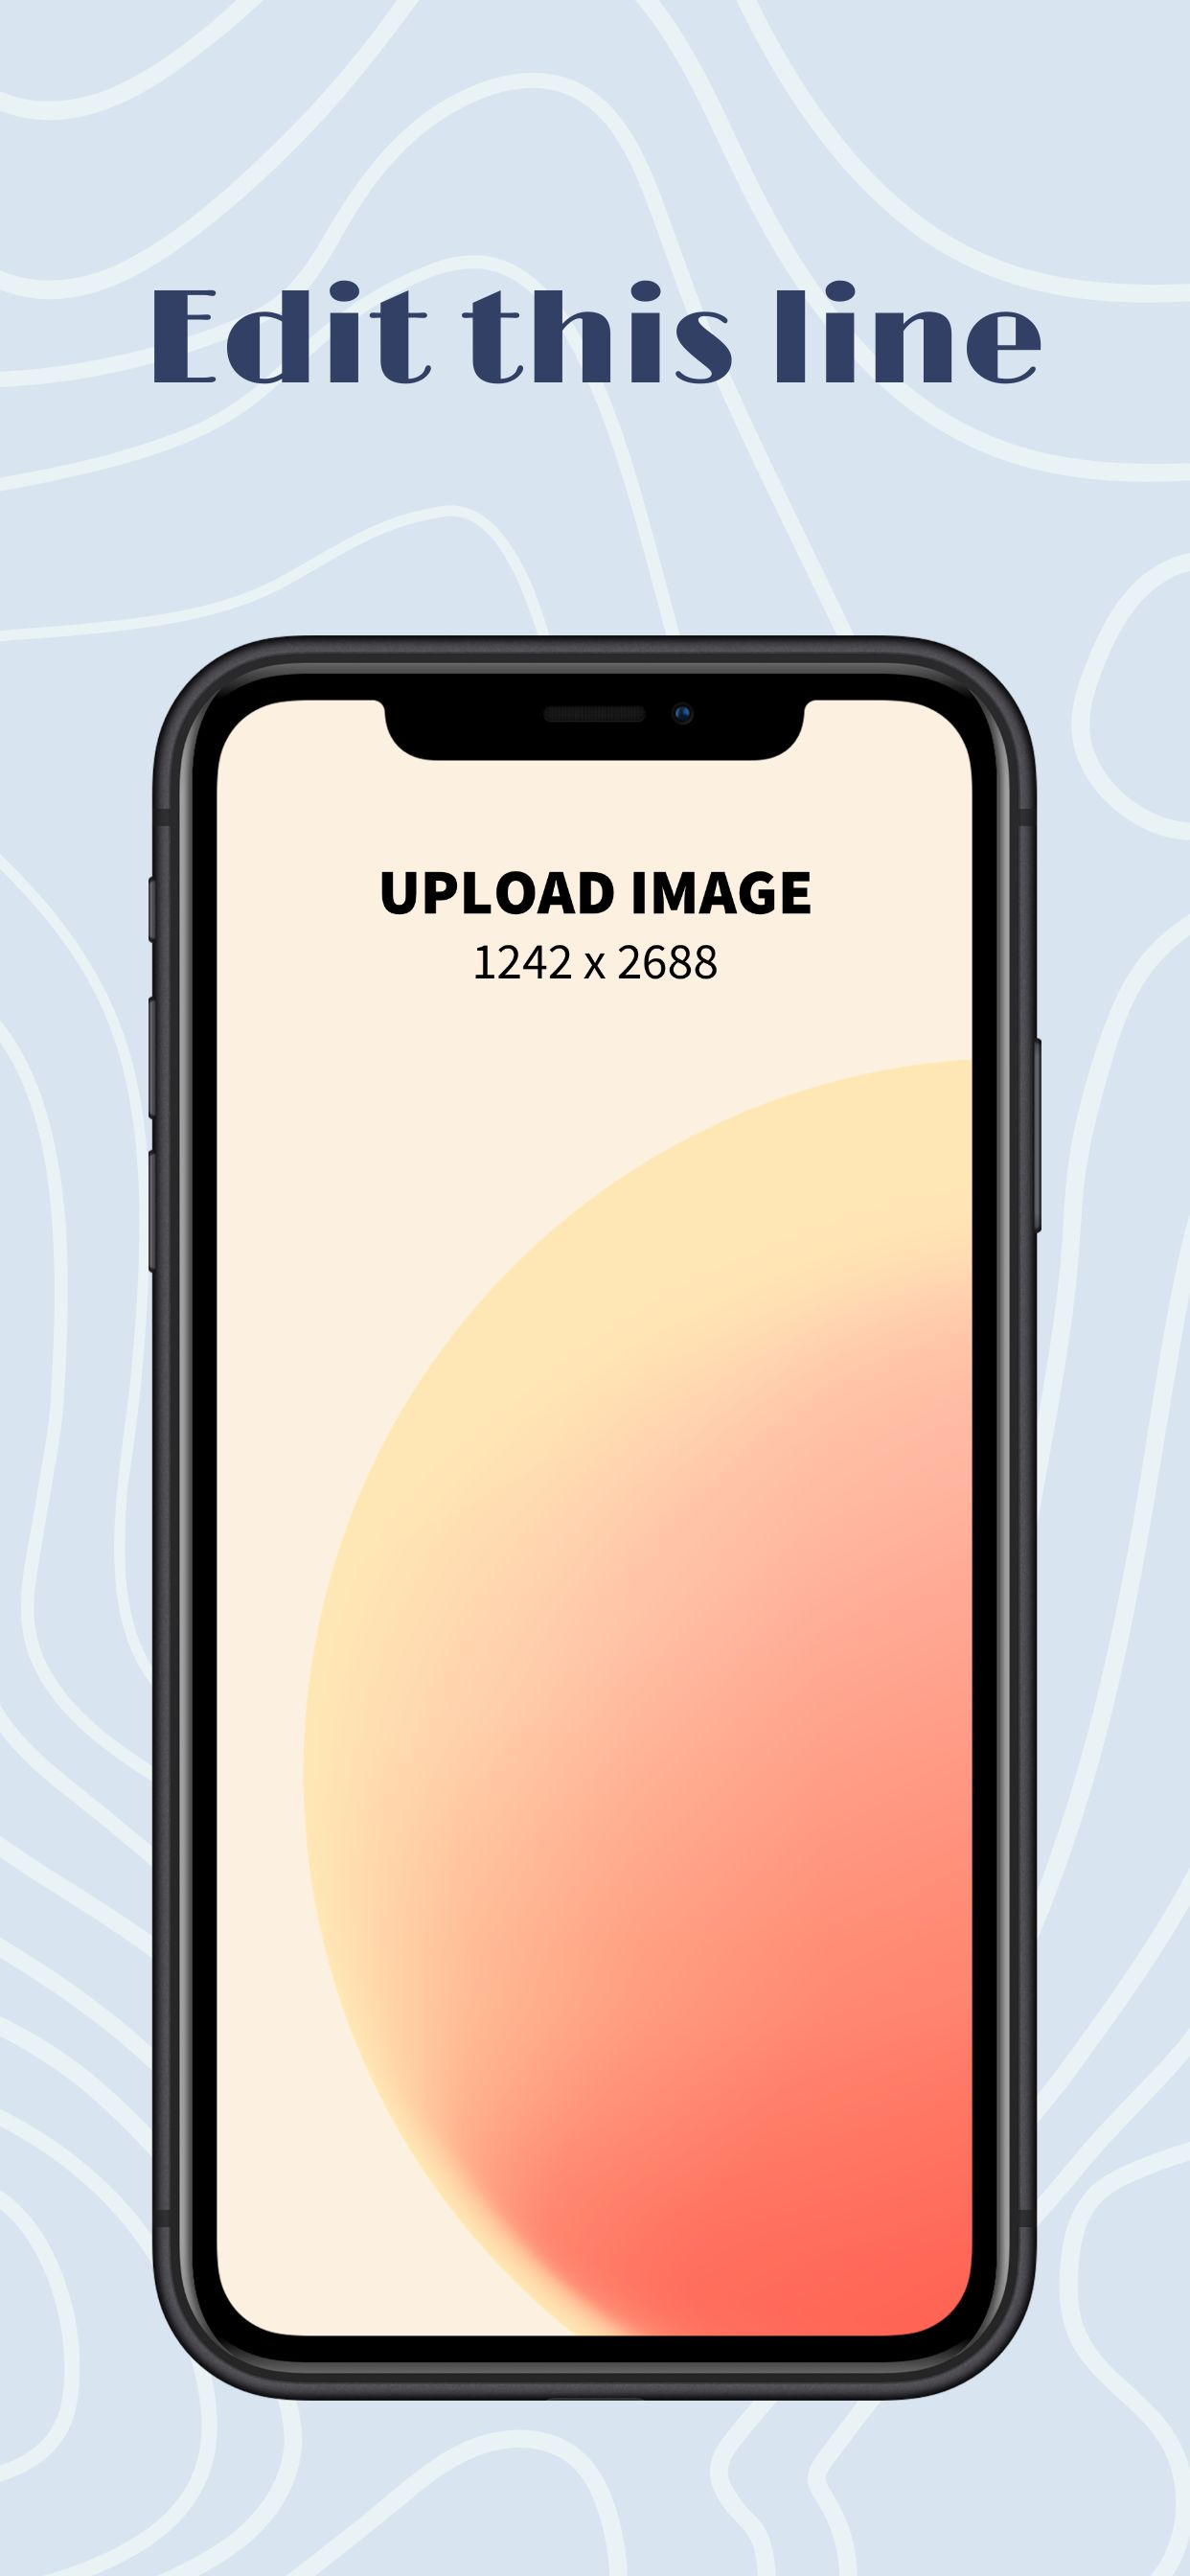 iPhone XS Max Screenshot 7 template. Quickly edit text, colors, images, and more for free.